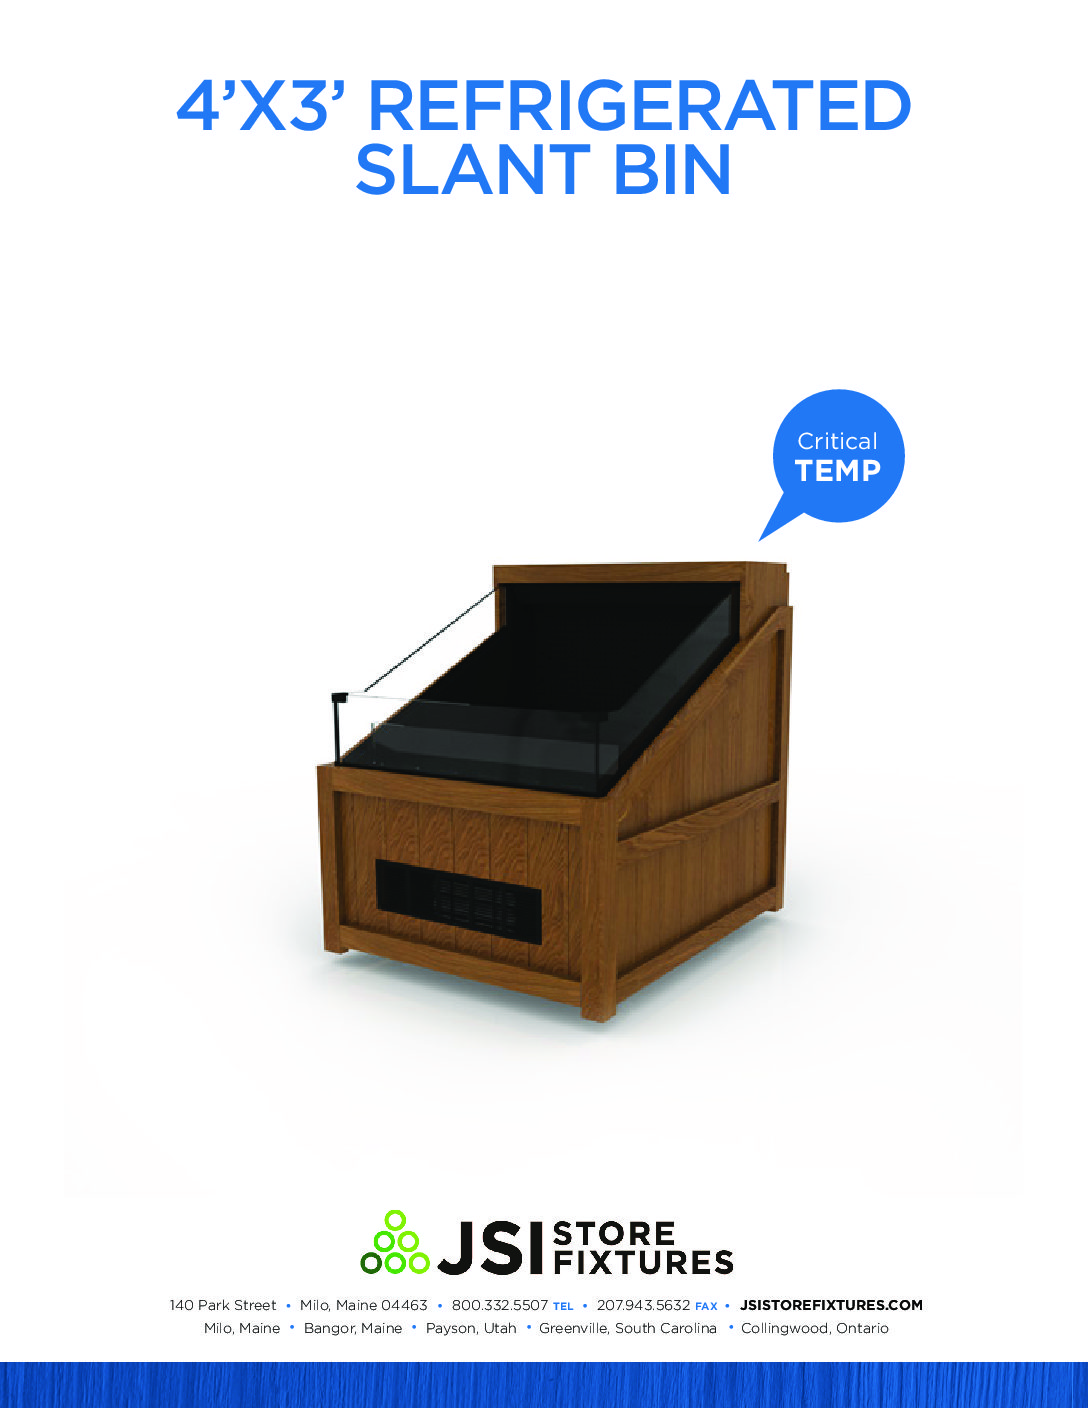 4'x3' Refrigerated Slant Bin Spec Sheet